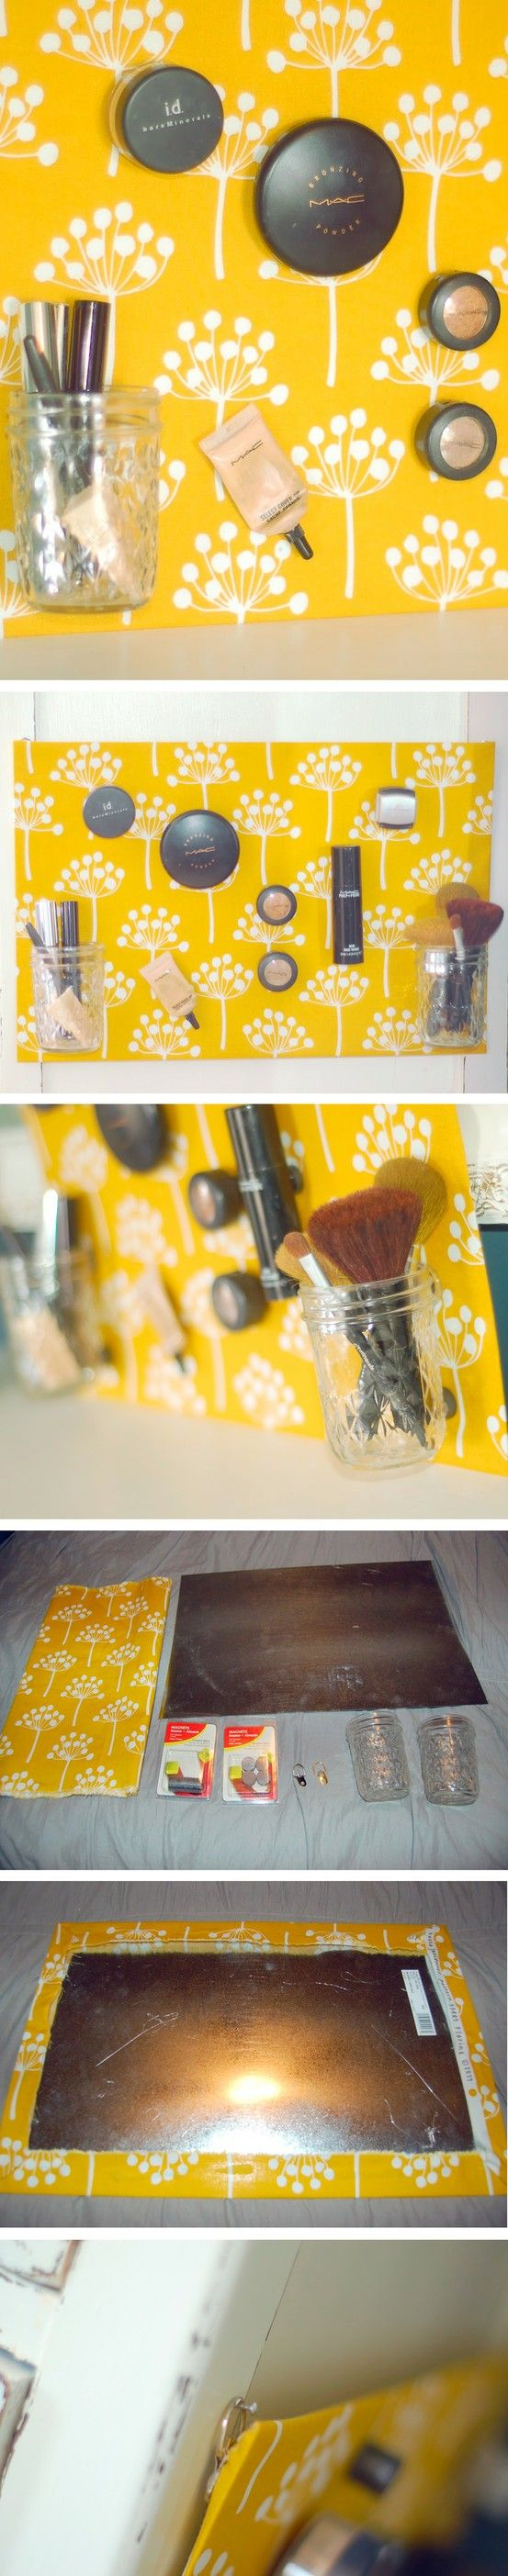 DIY Magnetic Makeup Board - so smart